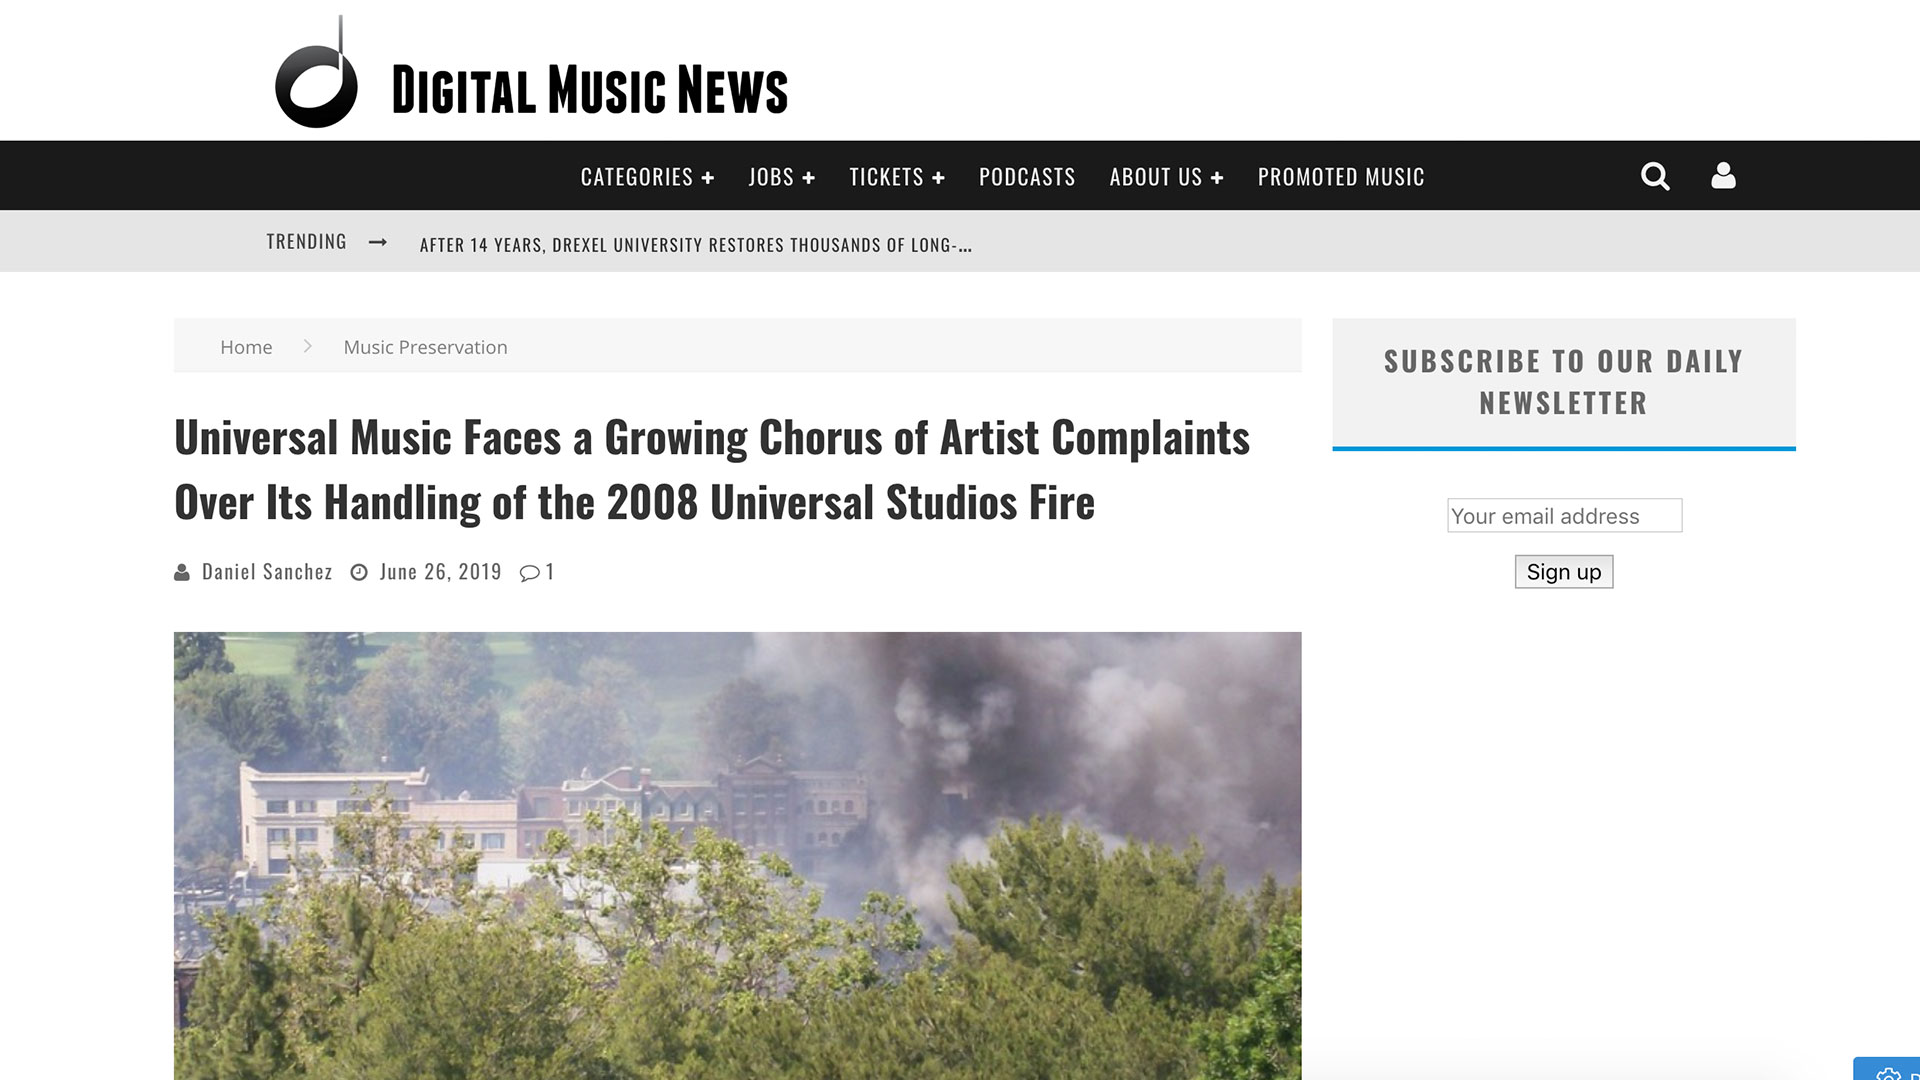 Fairness Rocks News Universal Music Faces a Growing Chorus of Artist Complaints Over Its Handling of the 2008 Universal Studios Fire